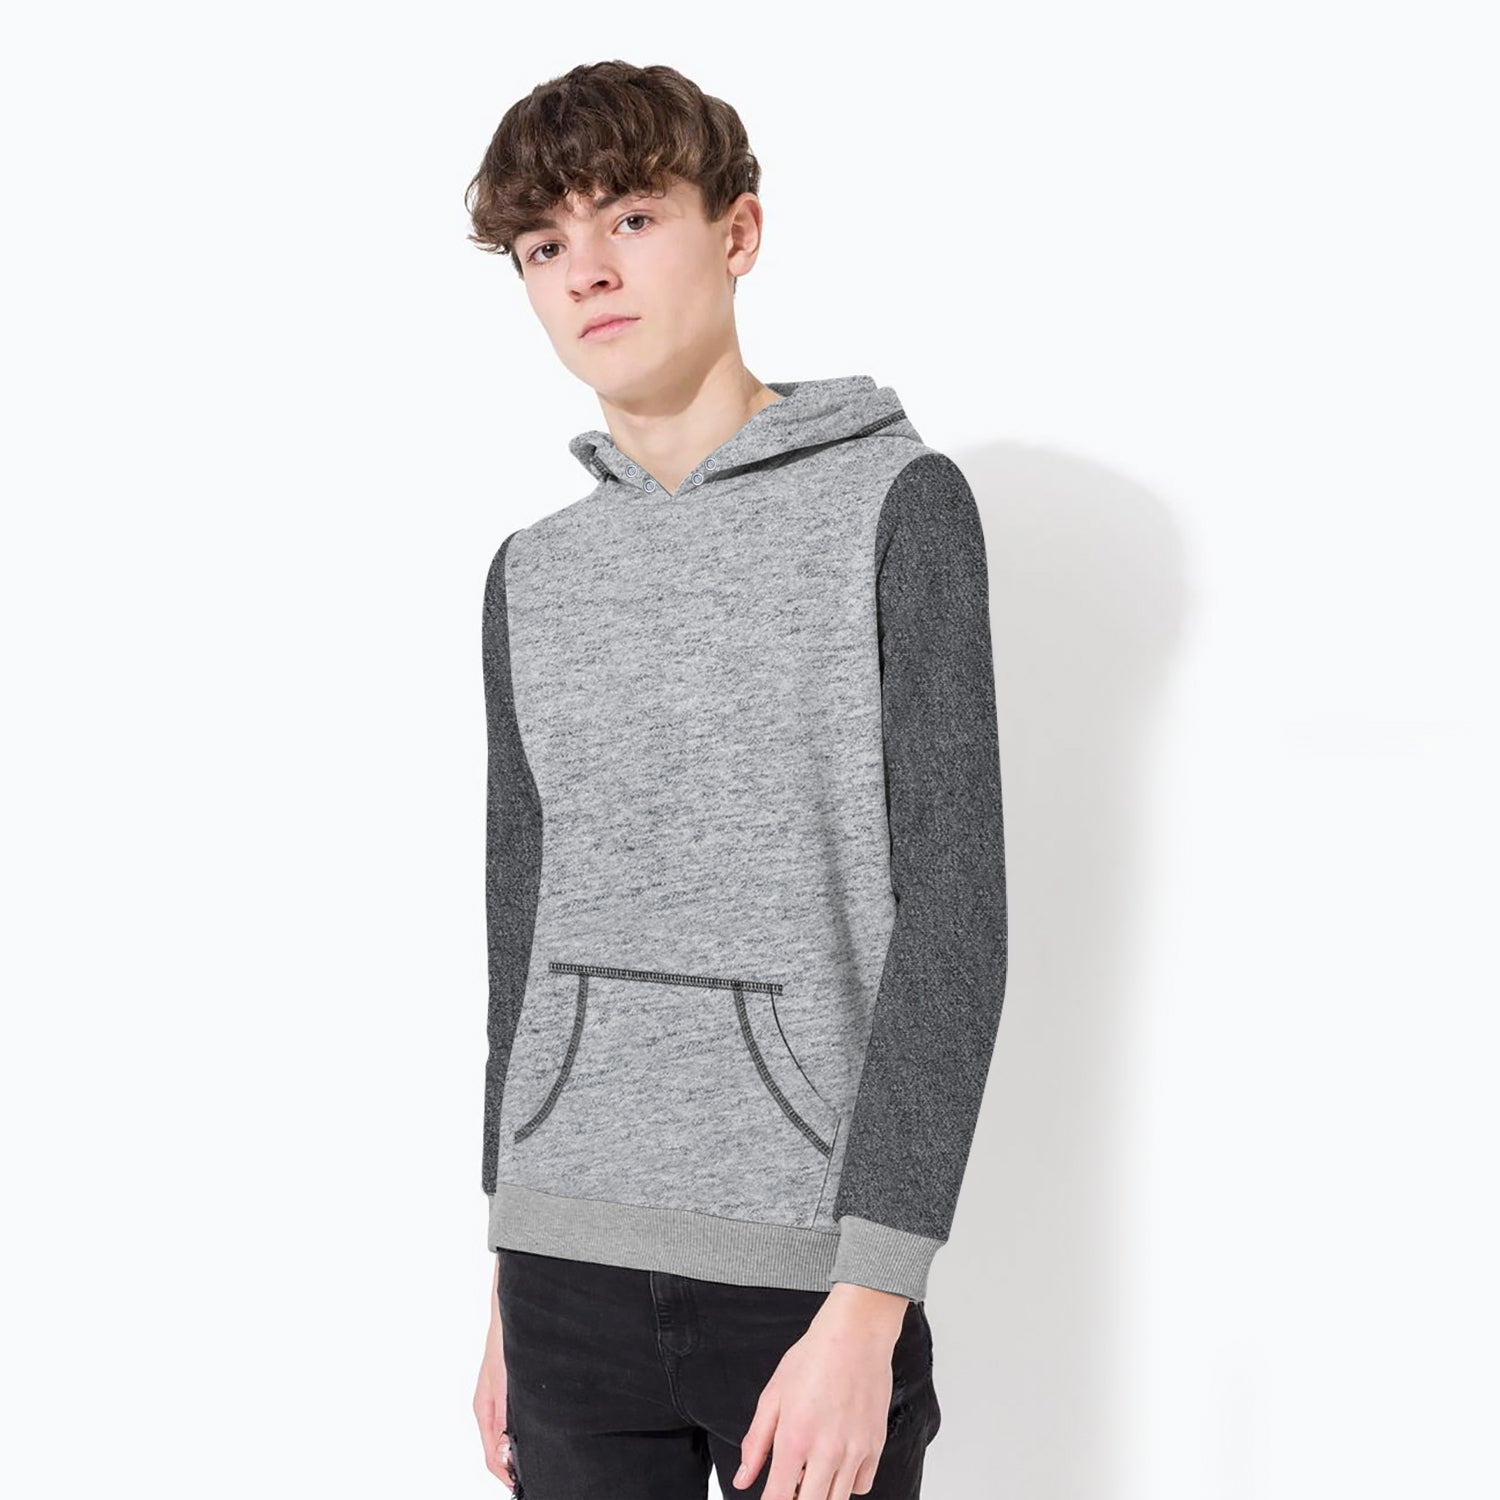 Next Fleece Stylish Pullover Hoodie For Kids-Grey & Charcoal Melange-BE10098